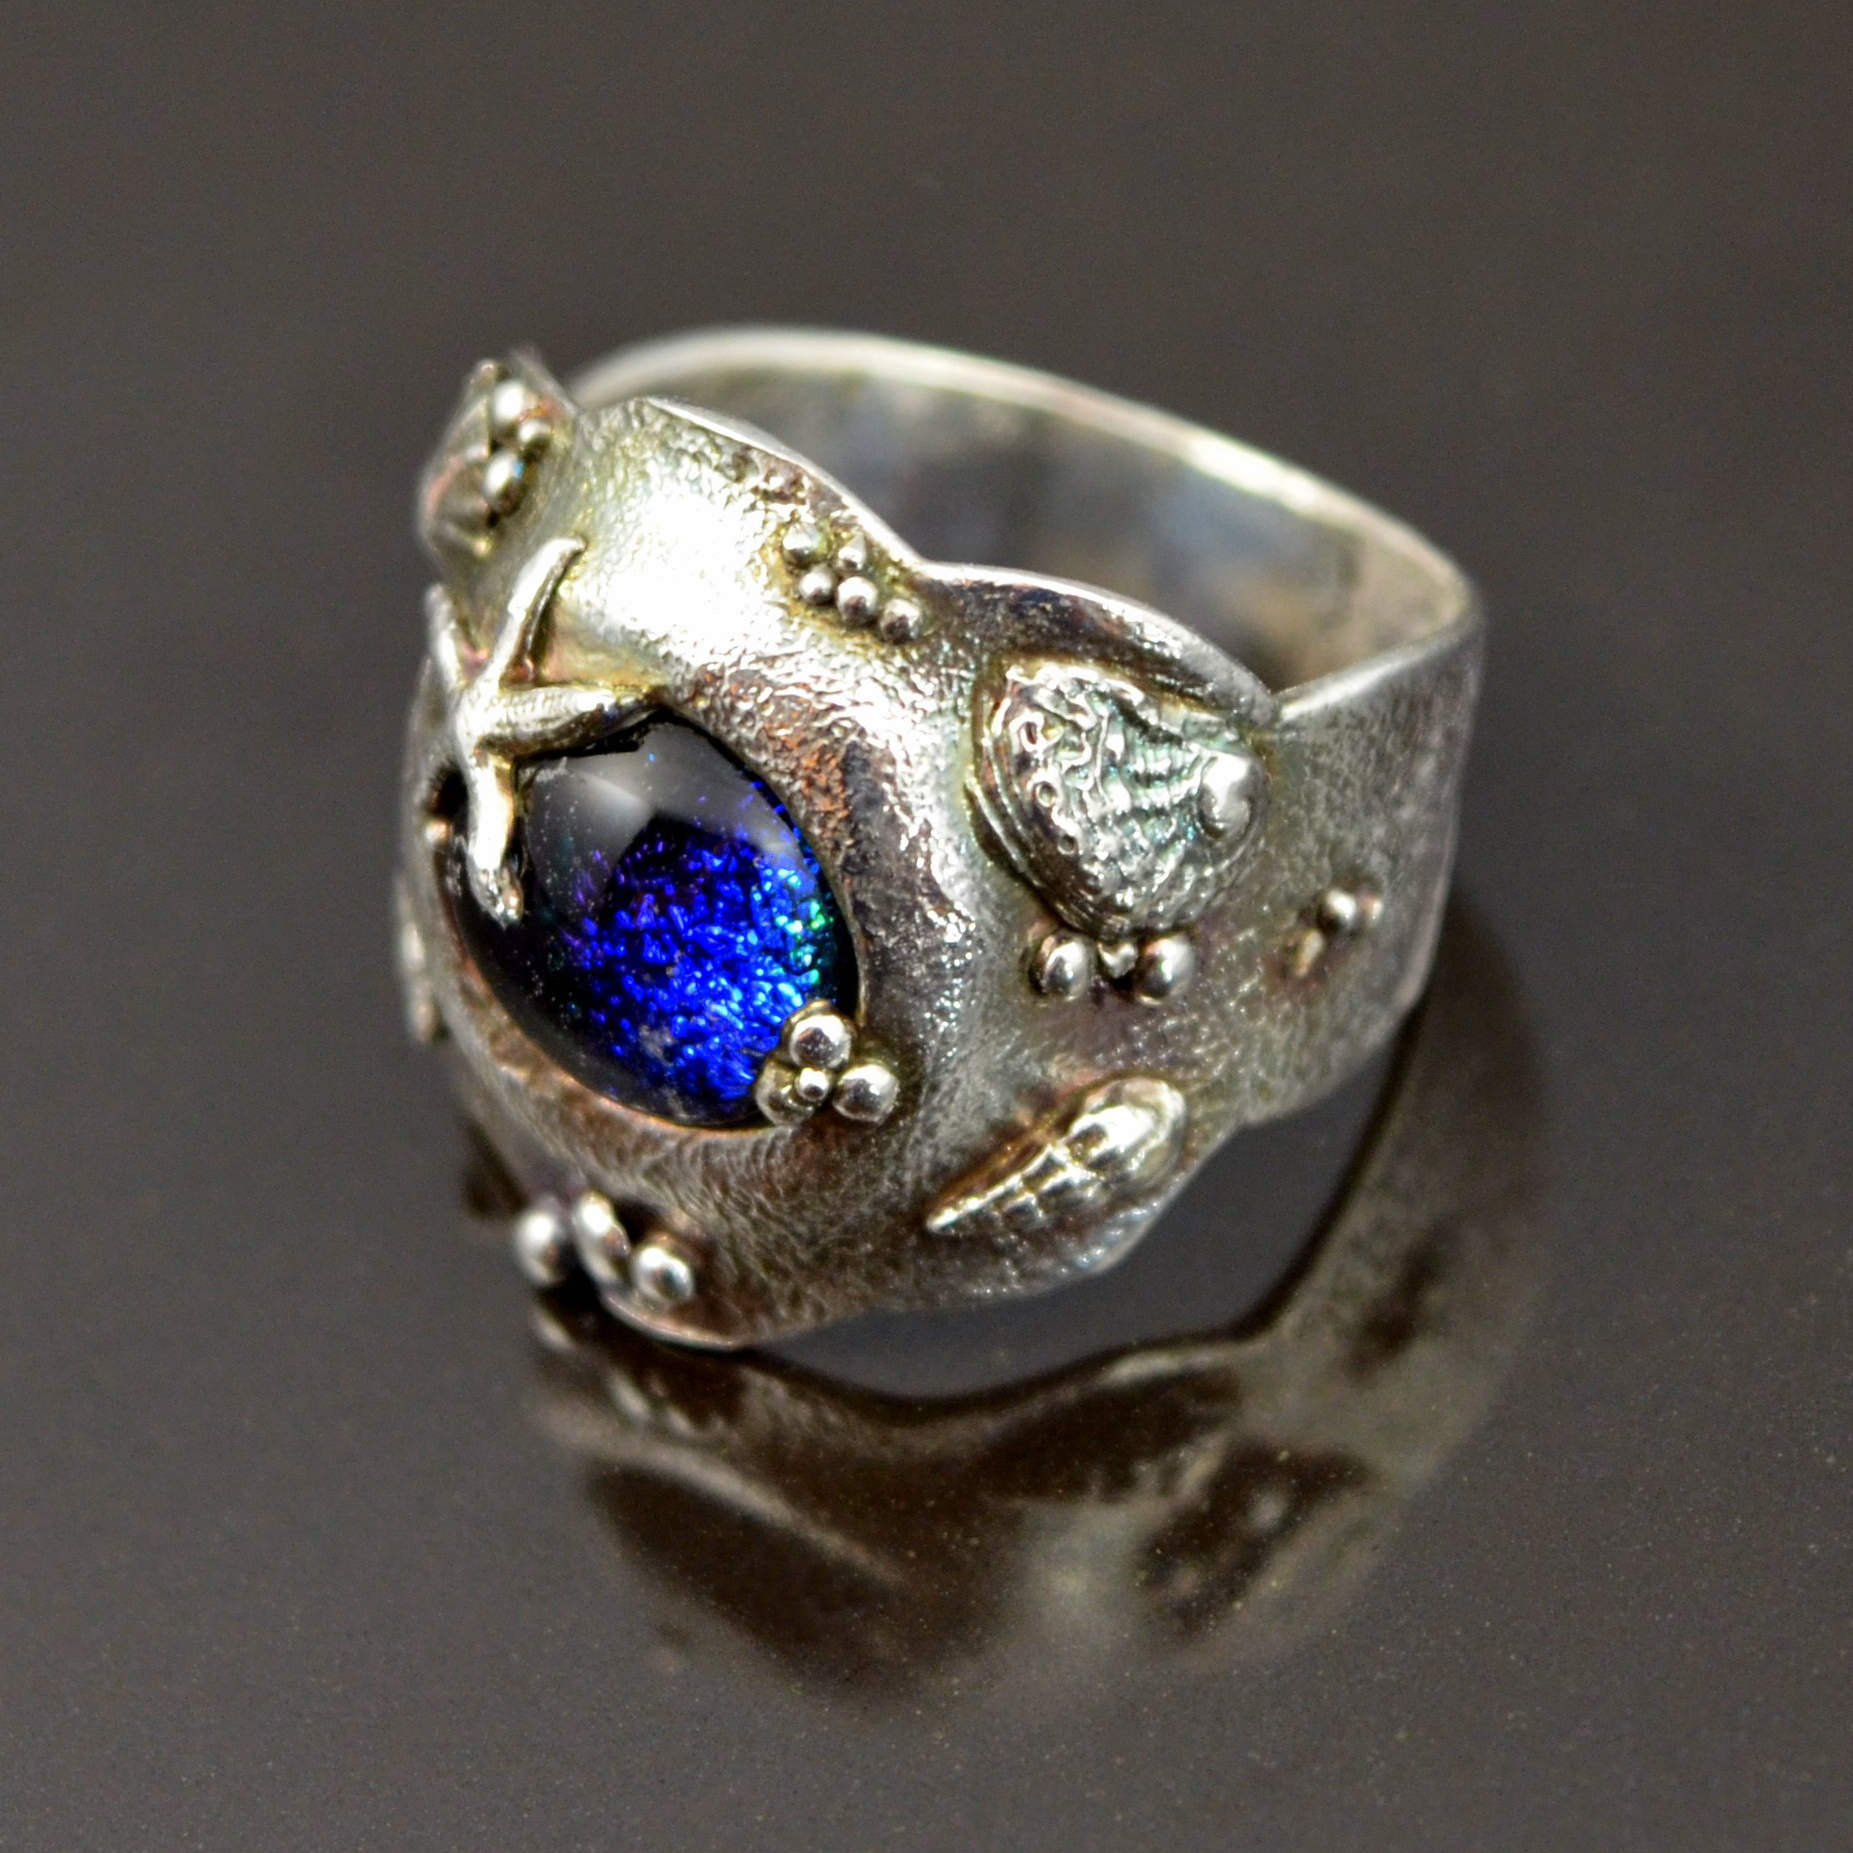 Glass and Silver Ocean Ring by Tracey Spurgin of Craftworx Jewellery Workshops